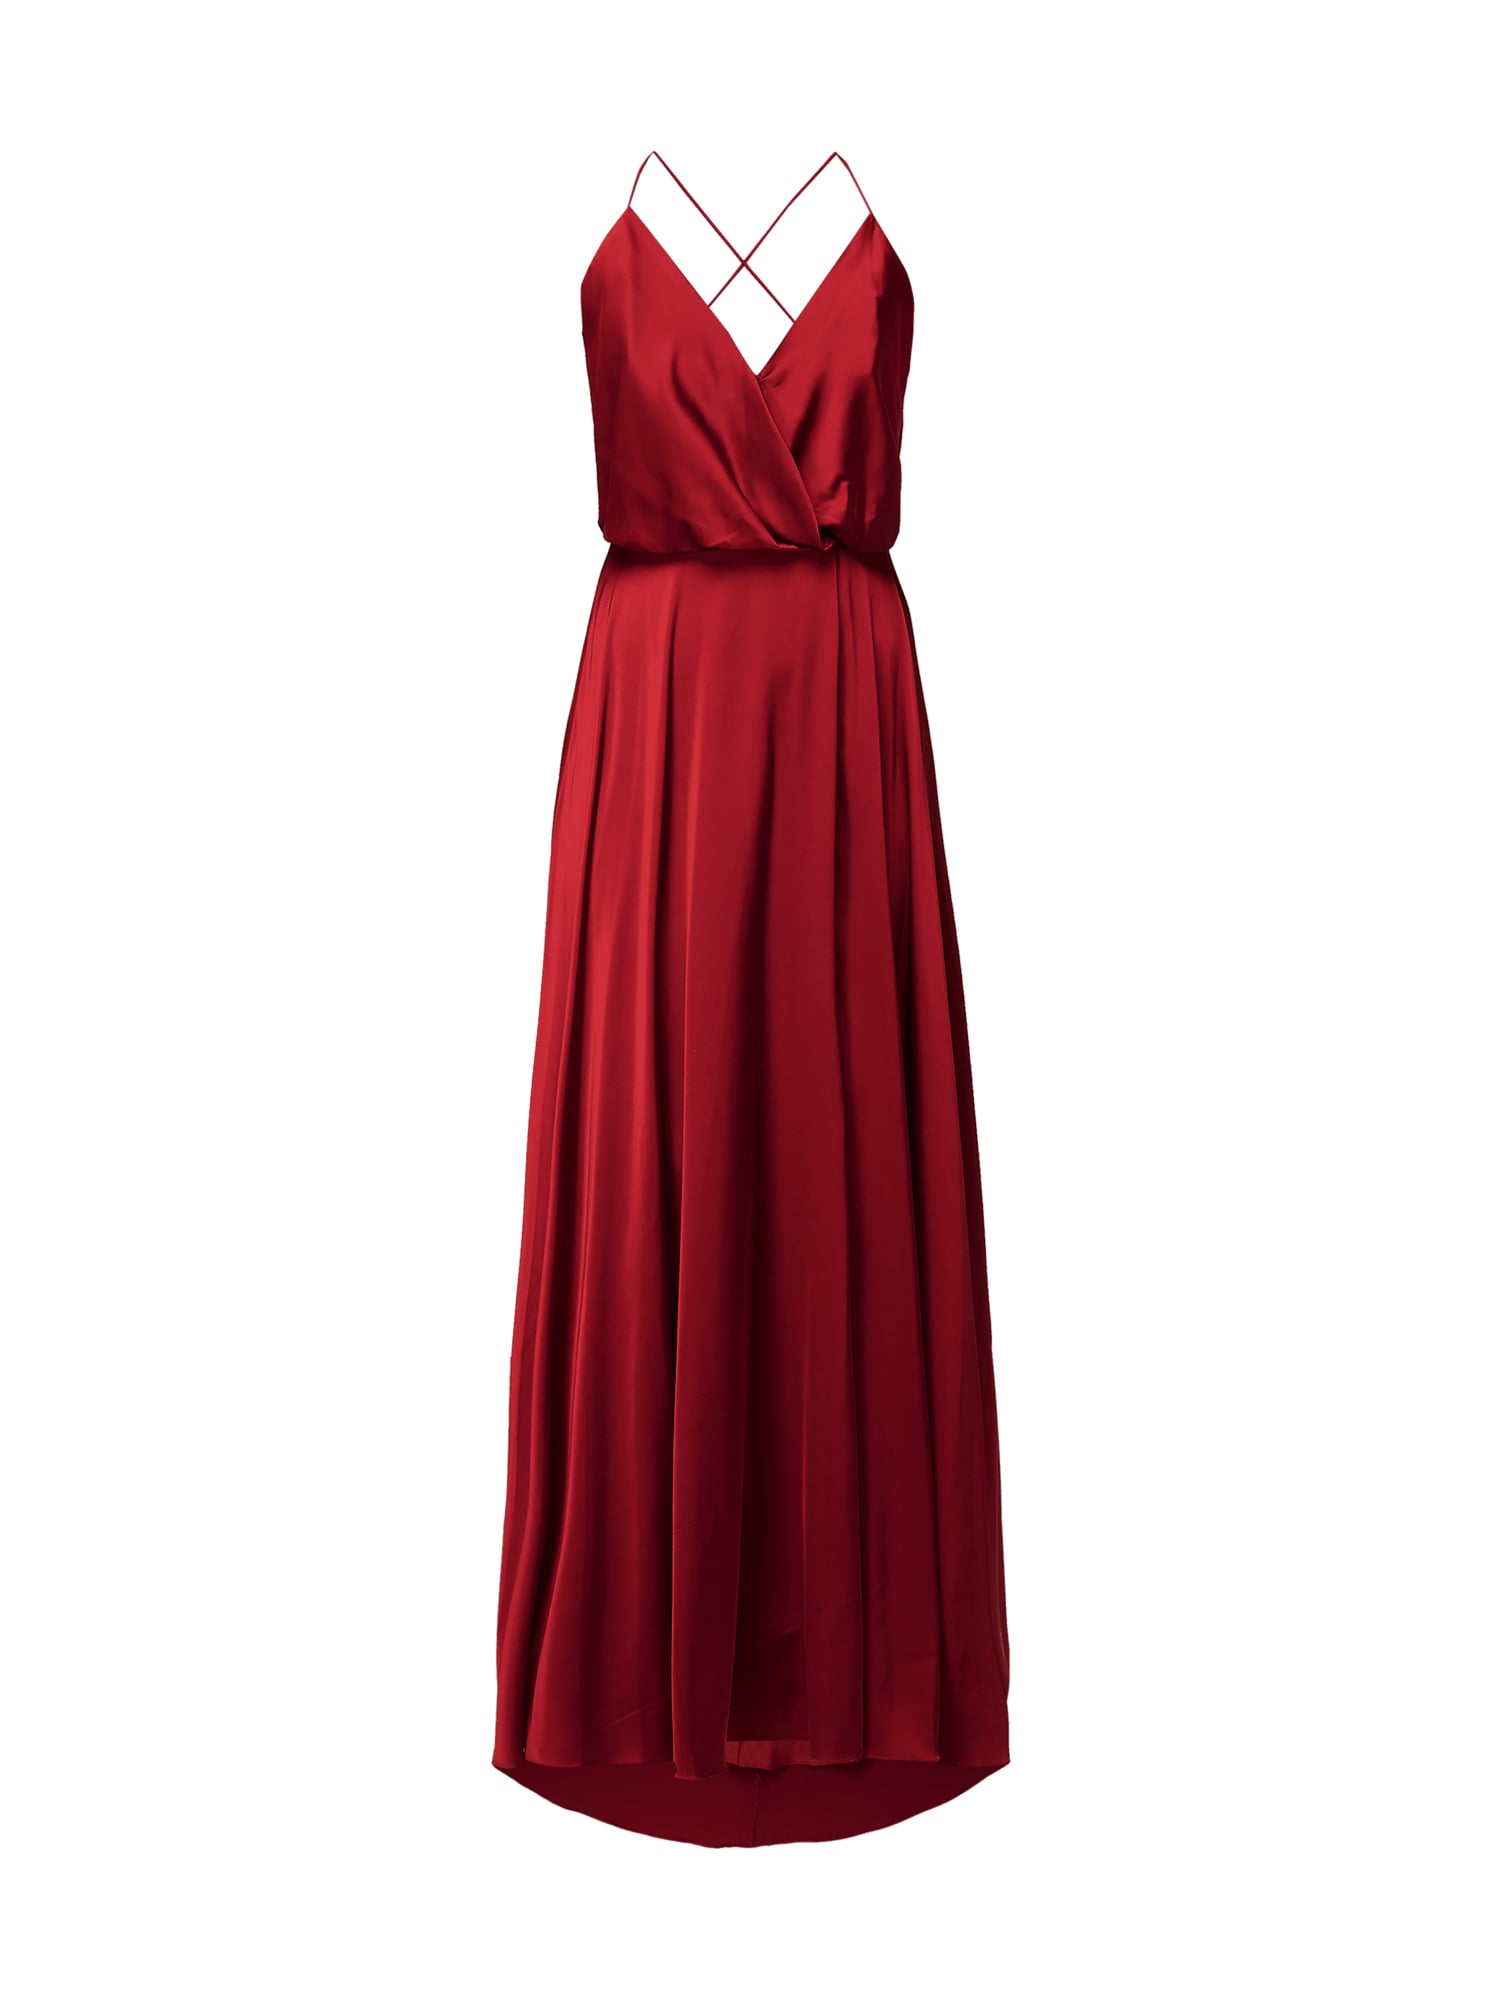 UNIQUE Abendkleid aus Satin in Rot online kaufen (13) ▷ P&C Online Shop